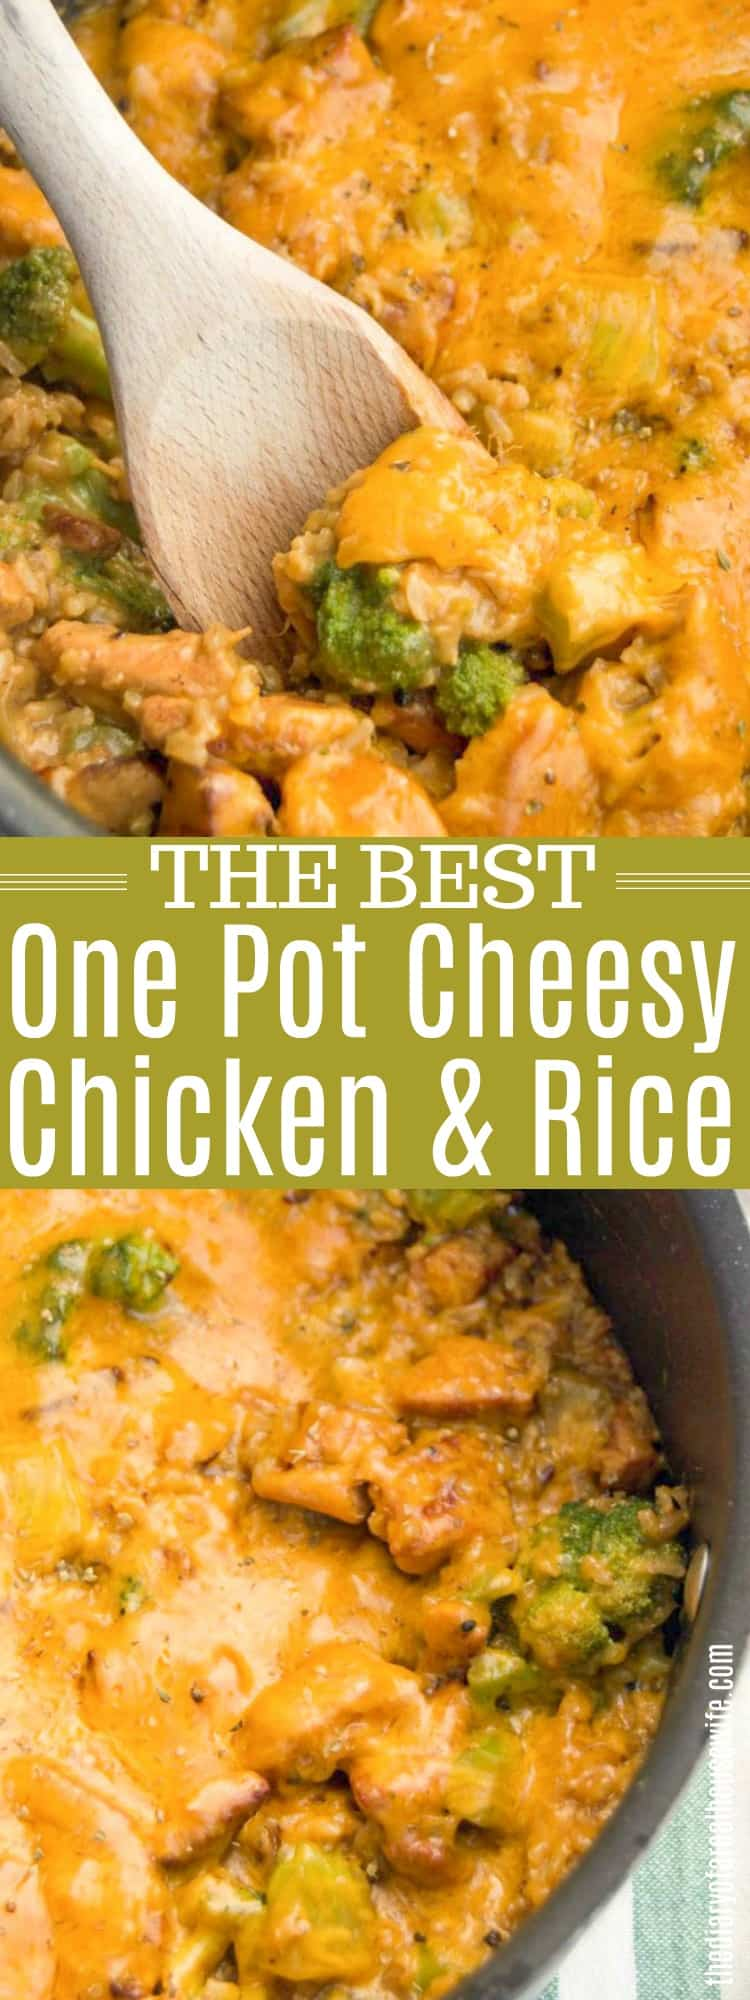 One Pot Cheesy Chicken and Rice